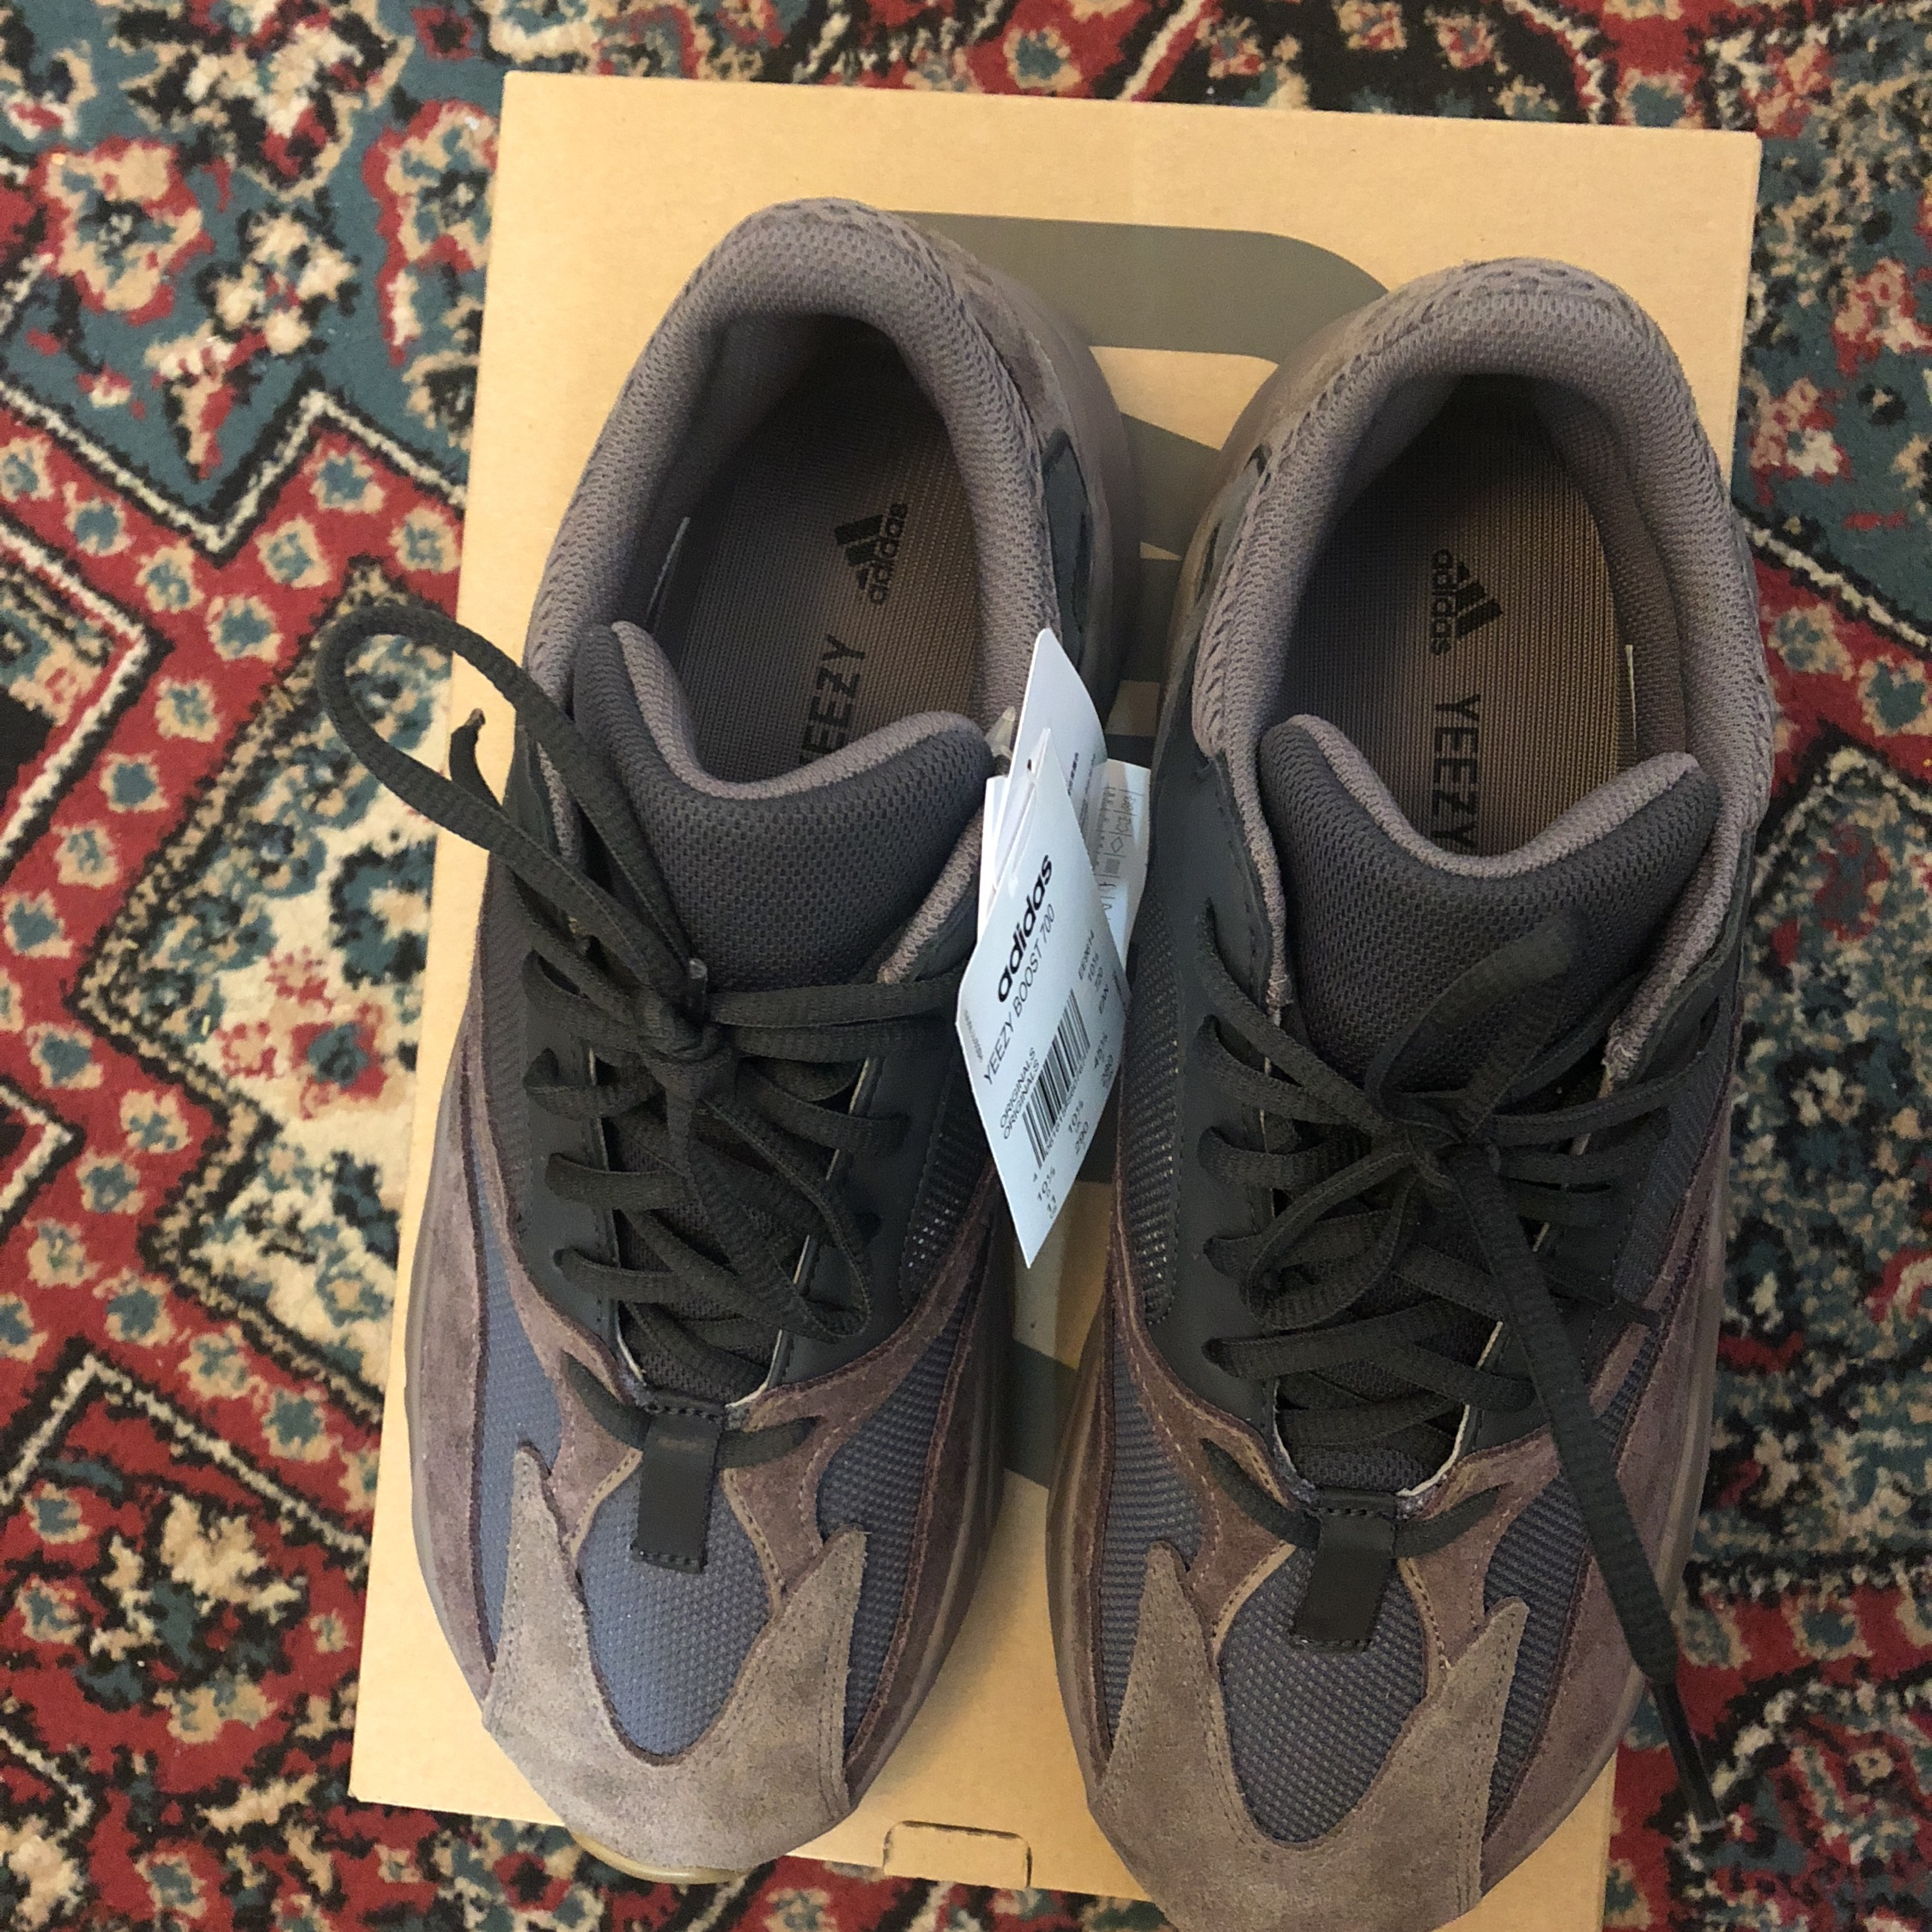 08a7fc0dbc6d5 Yeezy Boost 700 Mauve For Retail